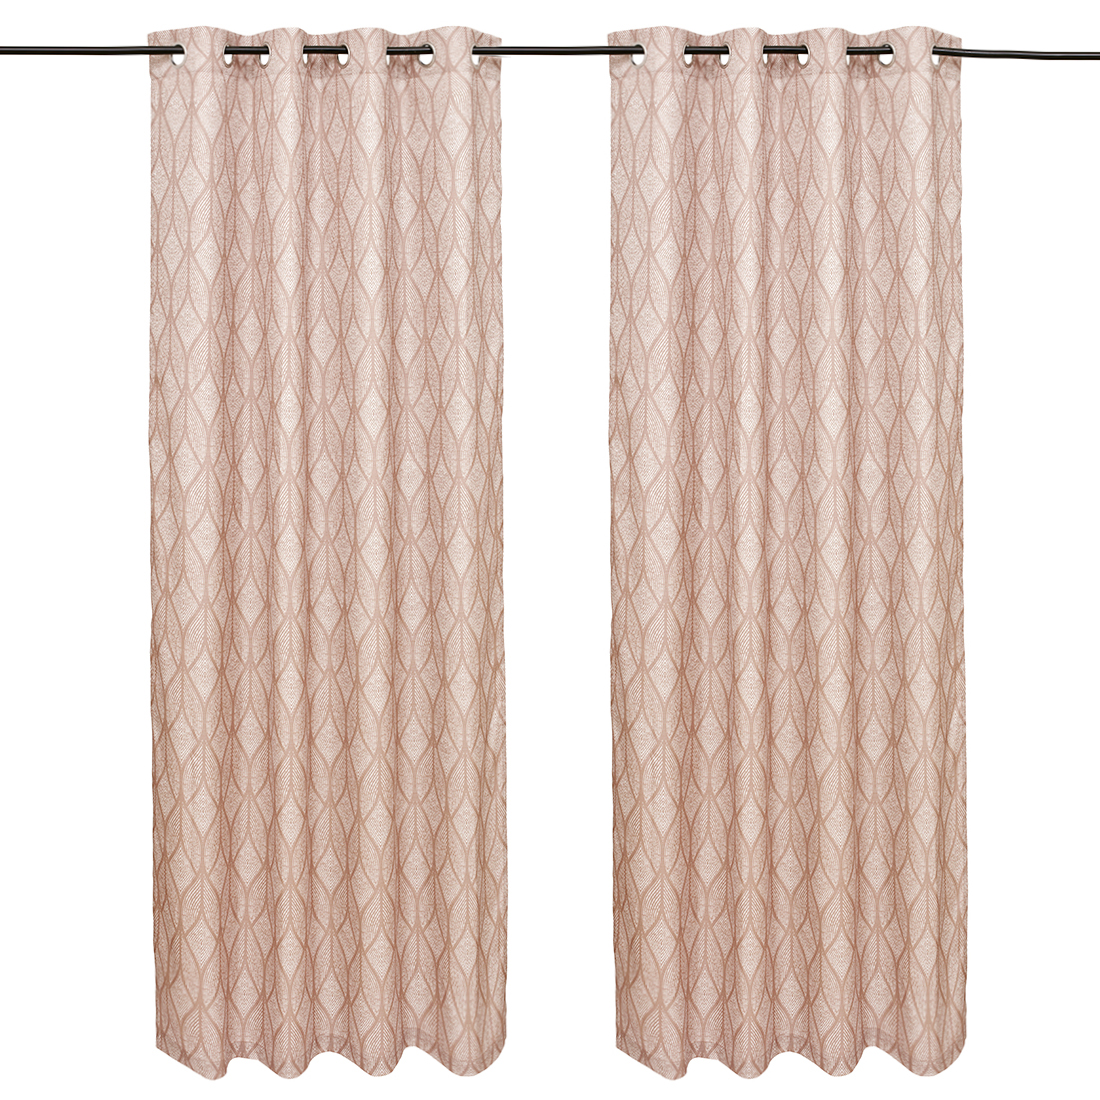 Nora Printed set of 2 Polyester Door Curtains in Beige Colour by Living Essence